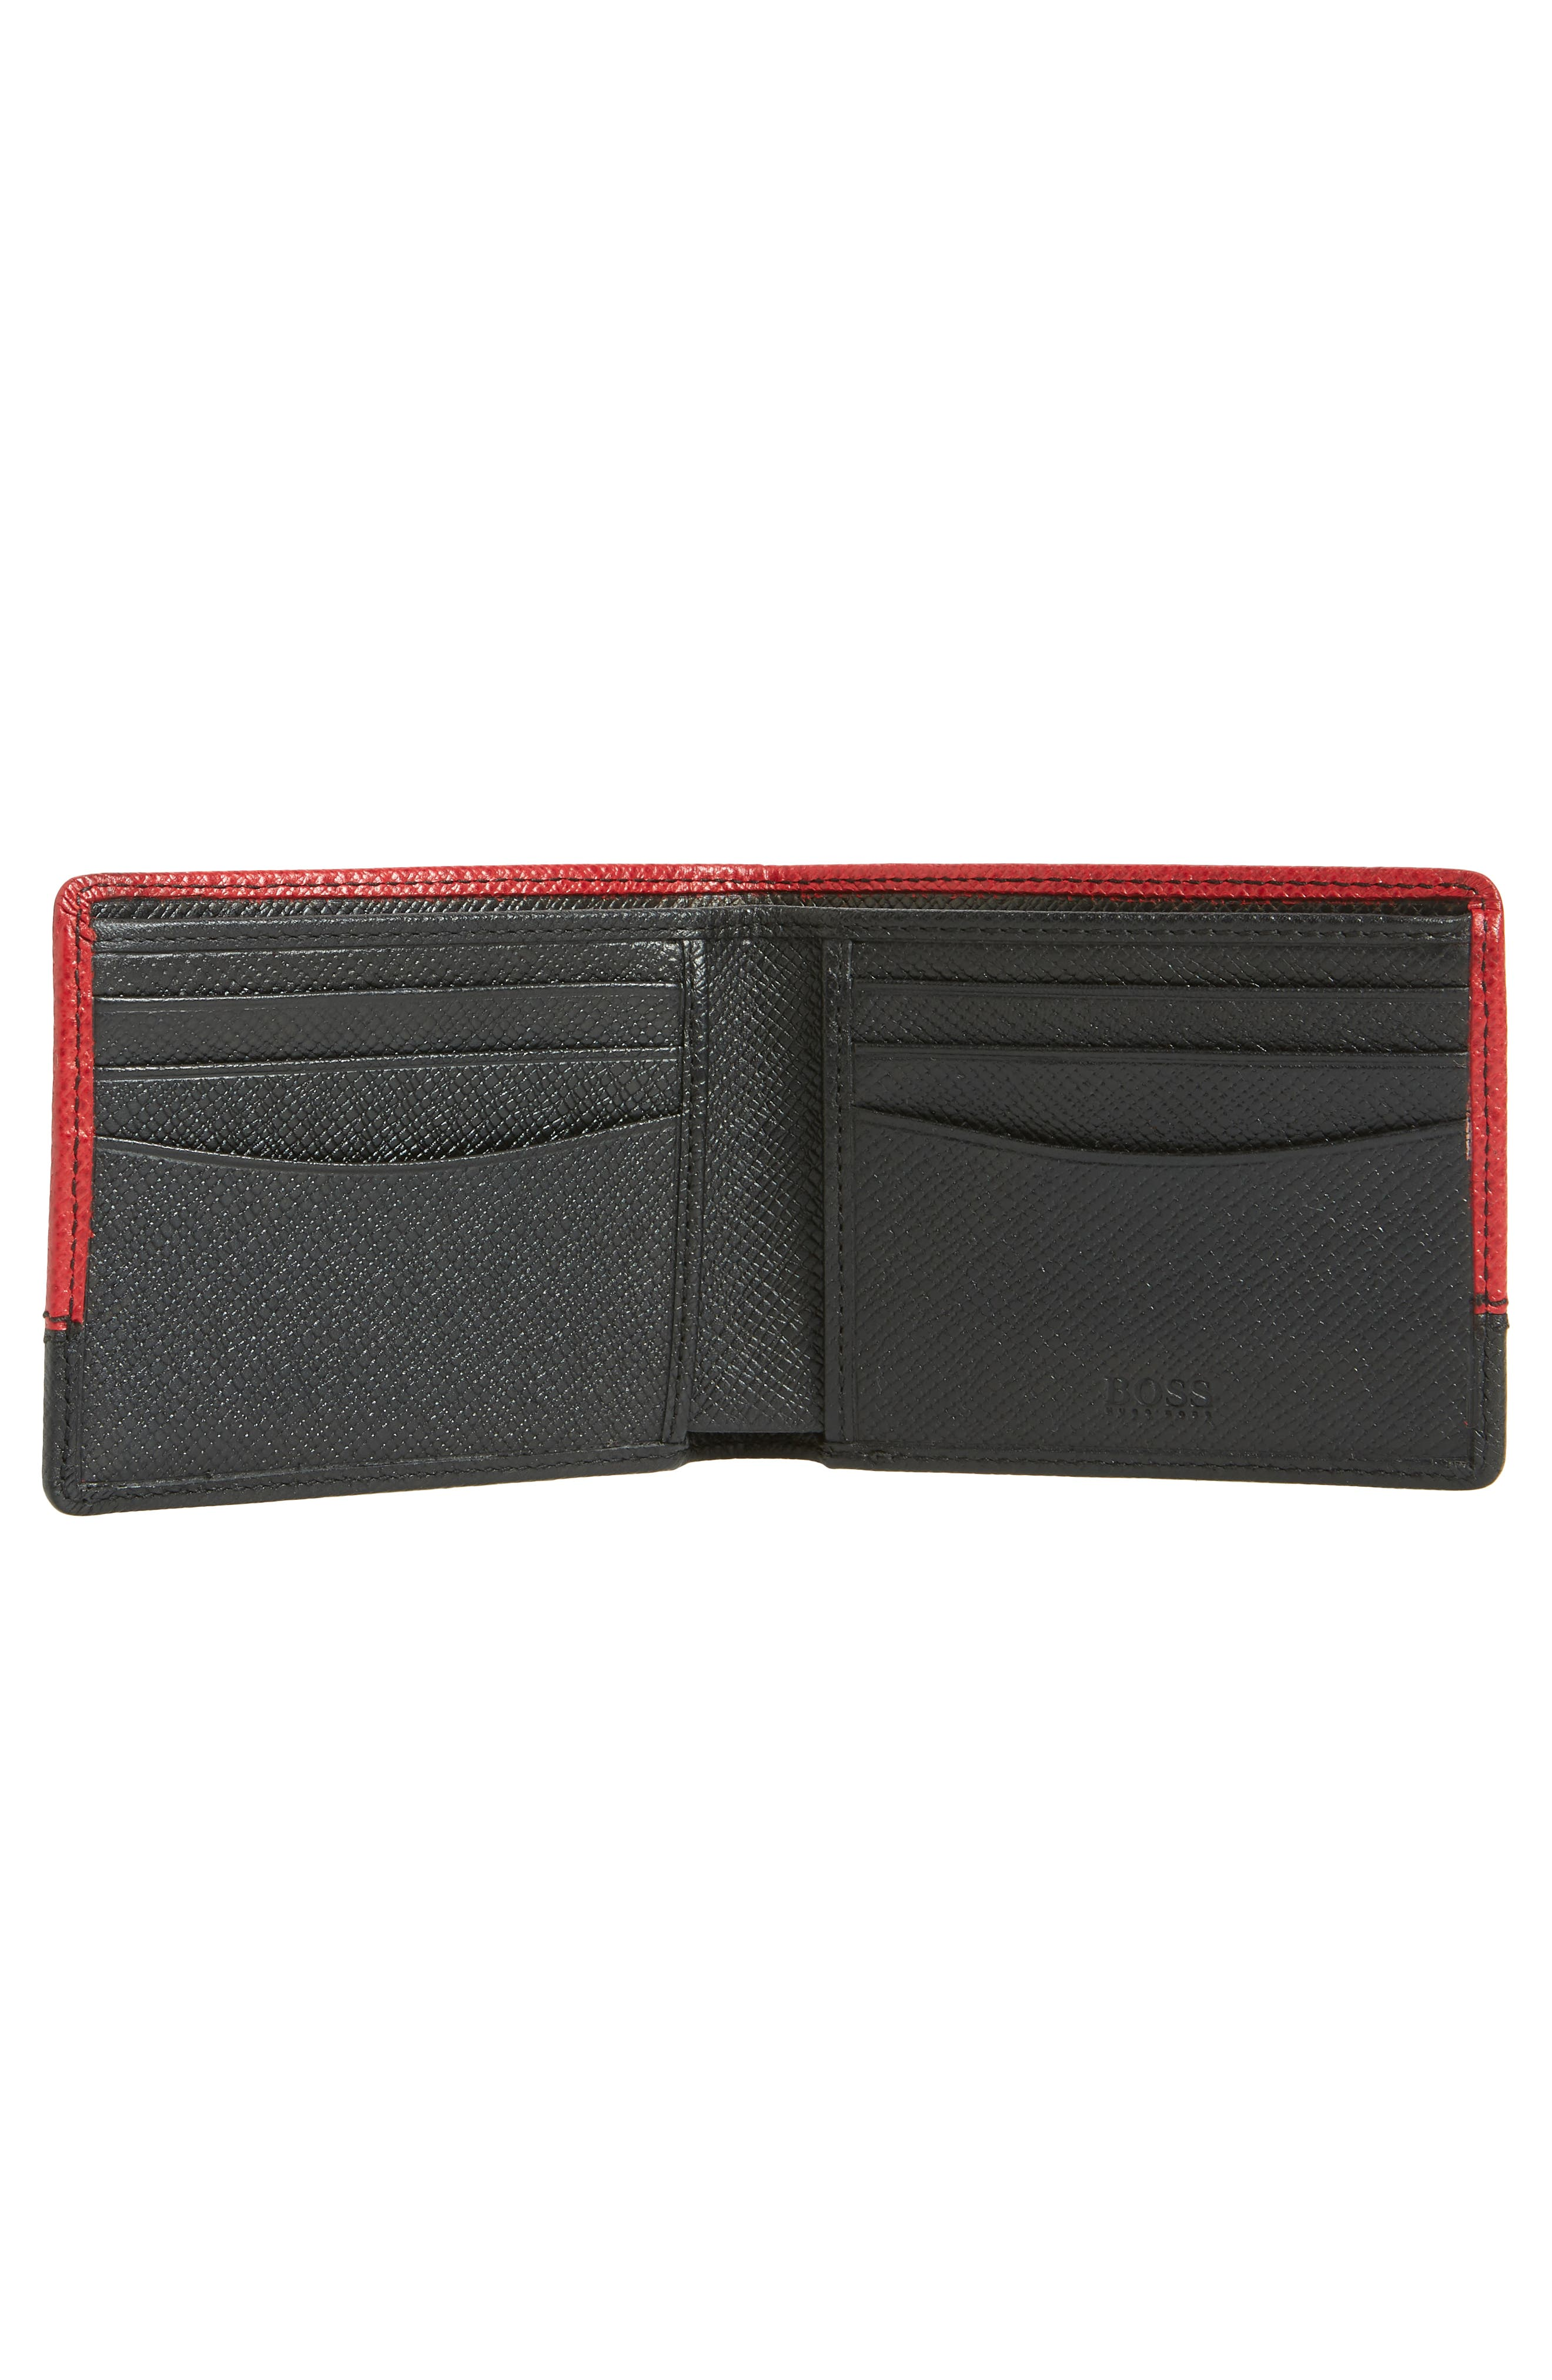 Embossed Leather Wallet,                             Alternate thumbnail 2, color,                             DARK RED